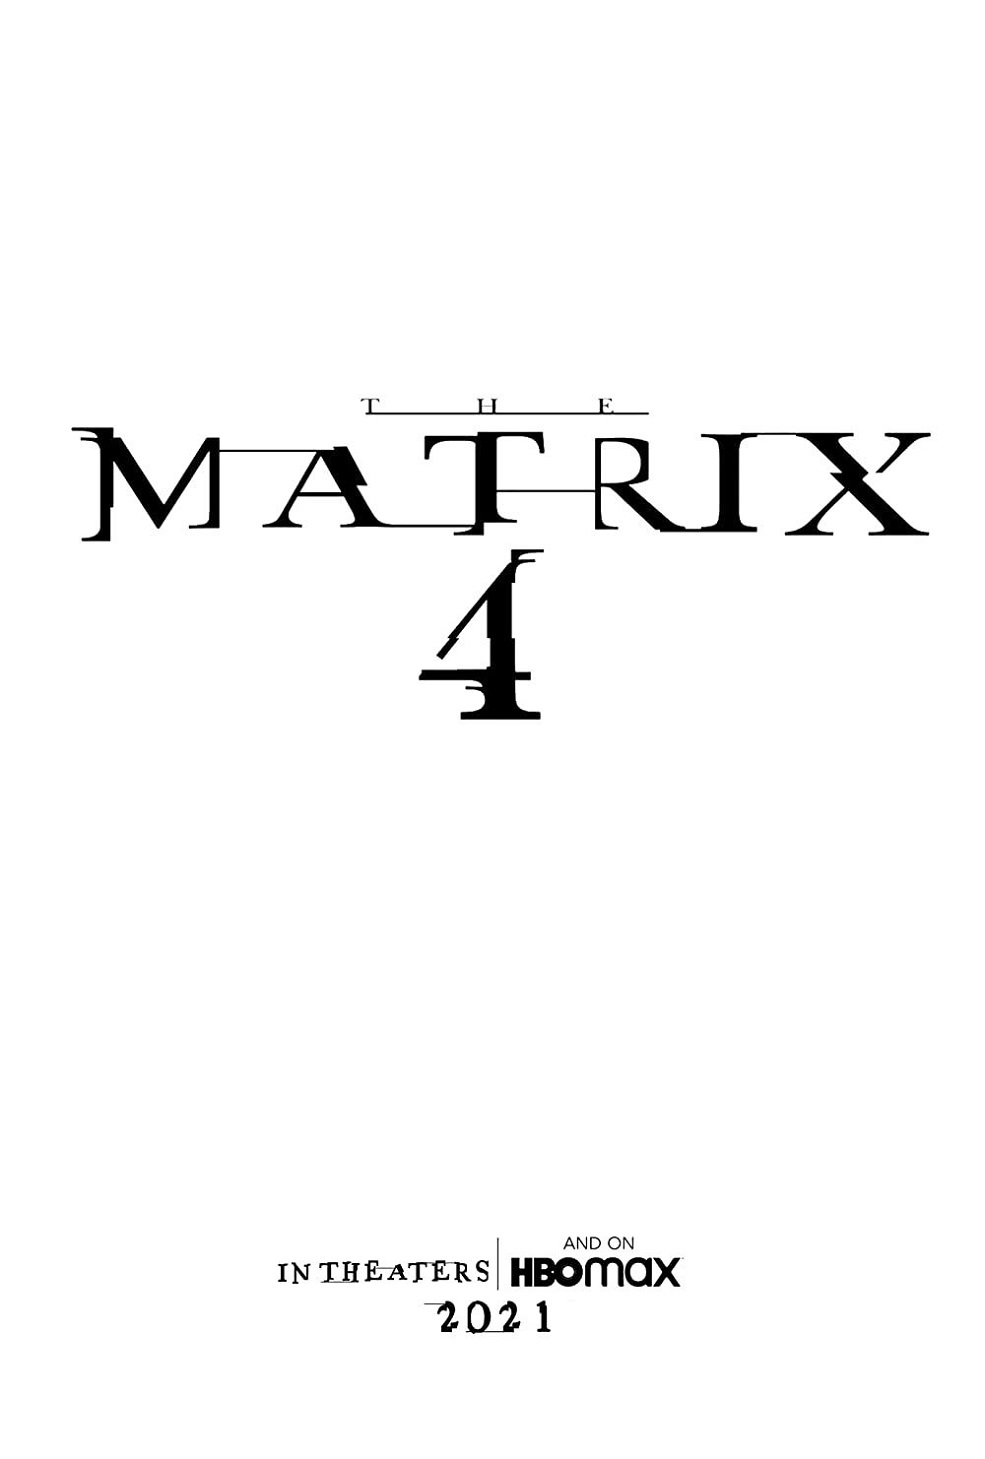 The Matrix 4: Story Attaché With Keanu Reeves And John Wick Experience To Pitch His Comic Series